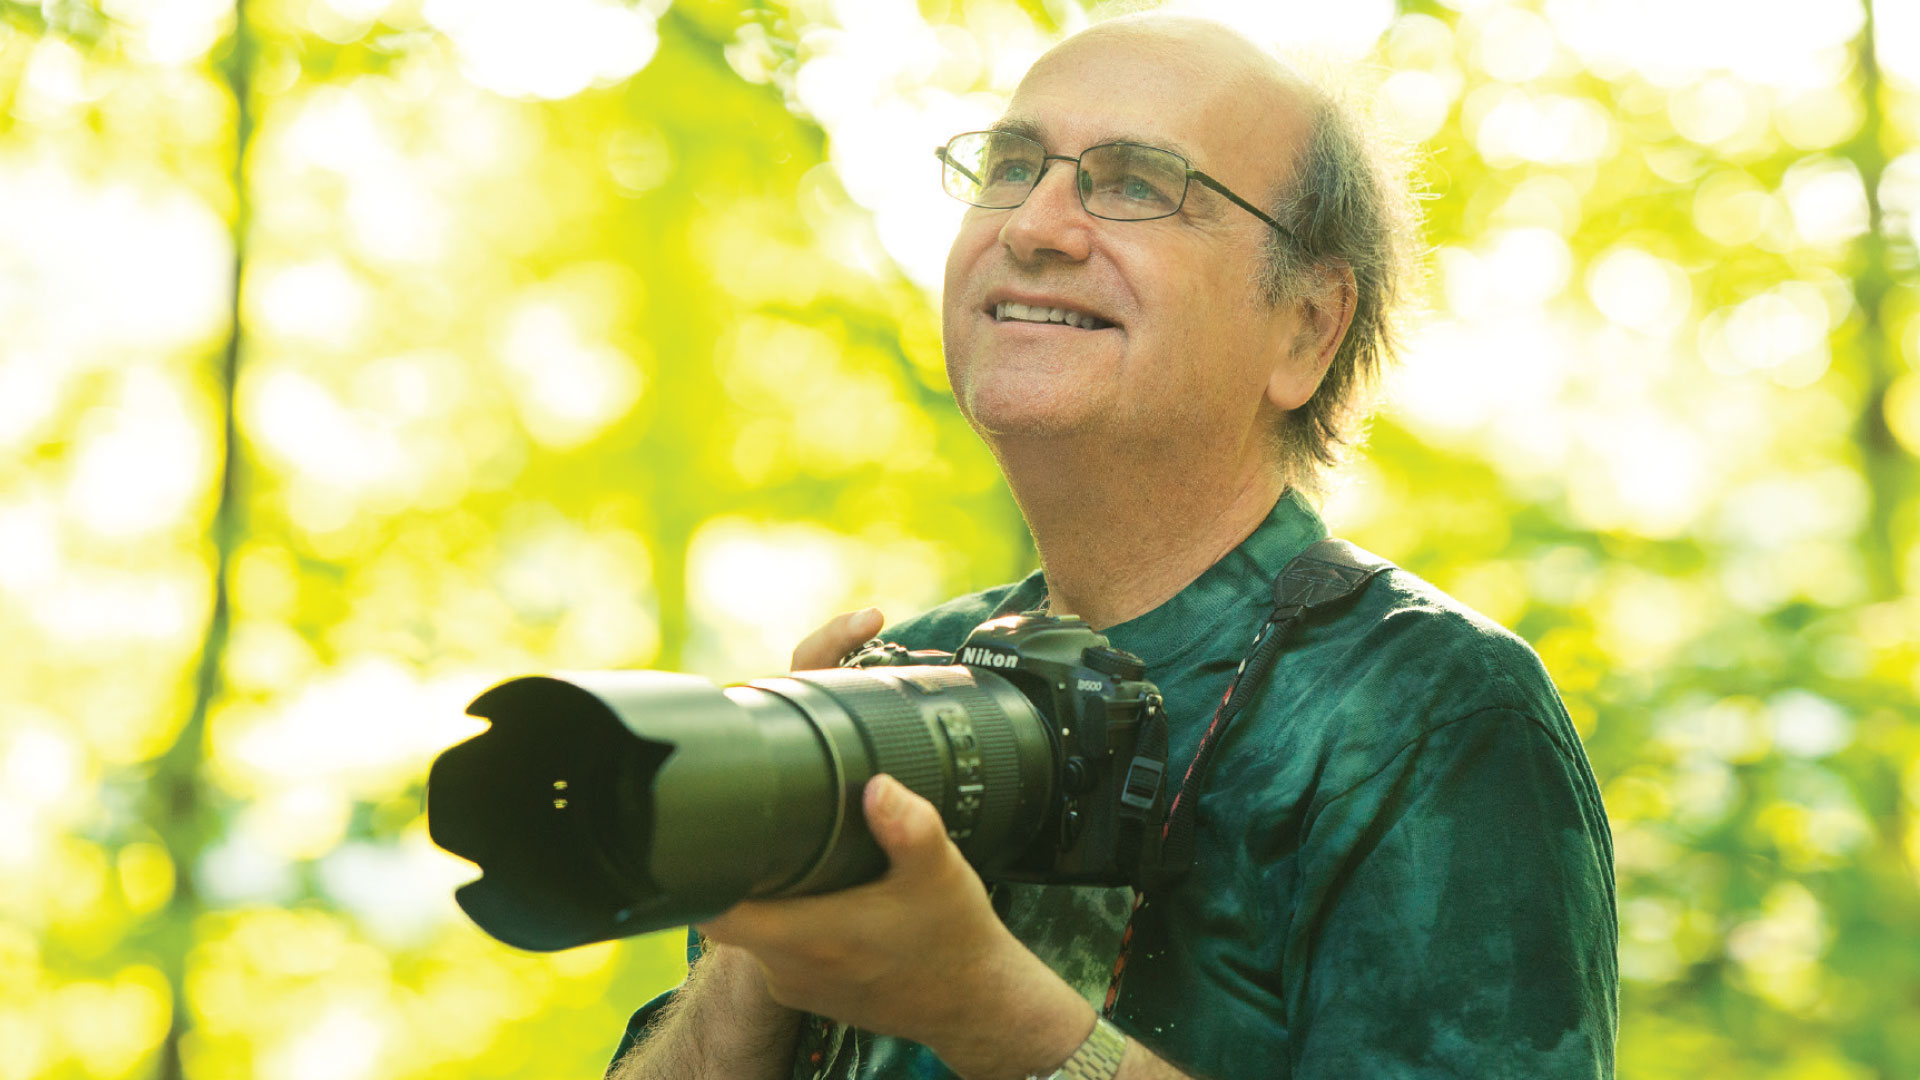 IBM Senior Technical Staff Member Peter Relson connects his career to his passion for photography and nature watching.